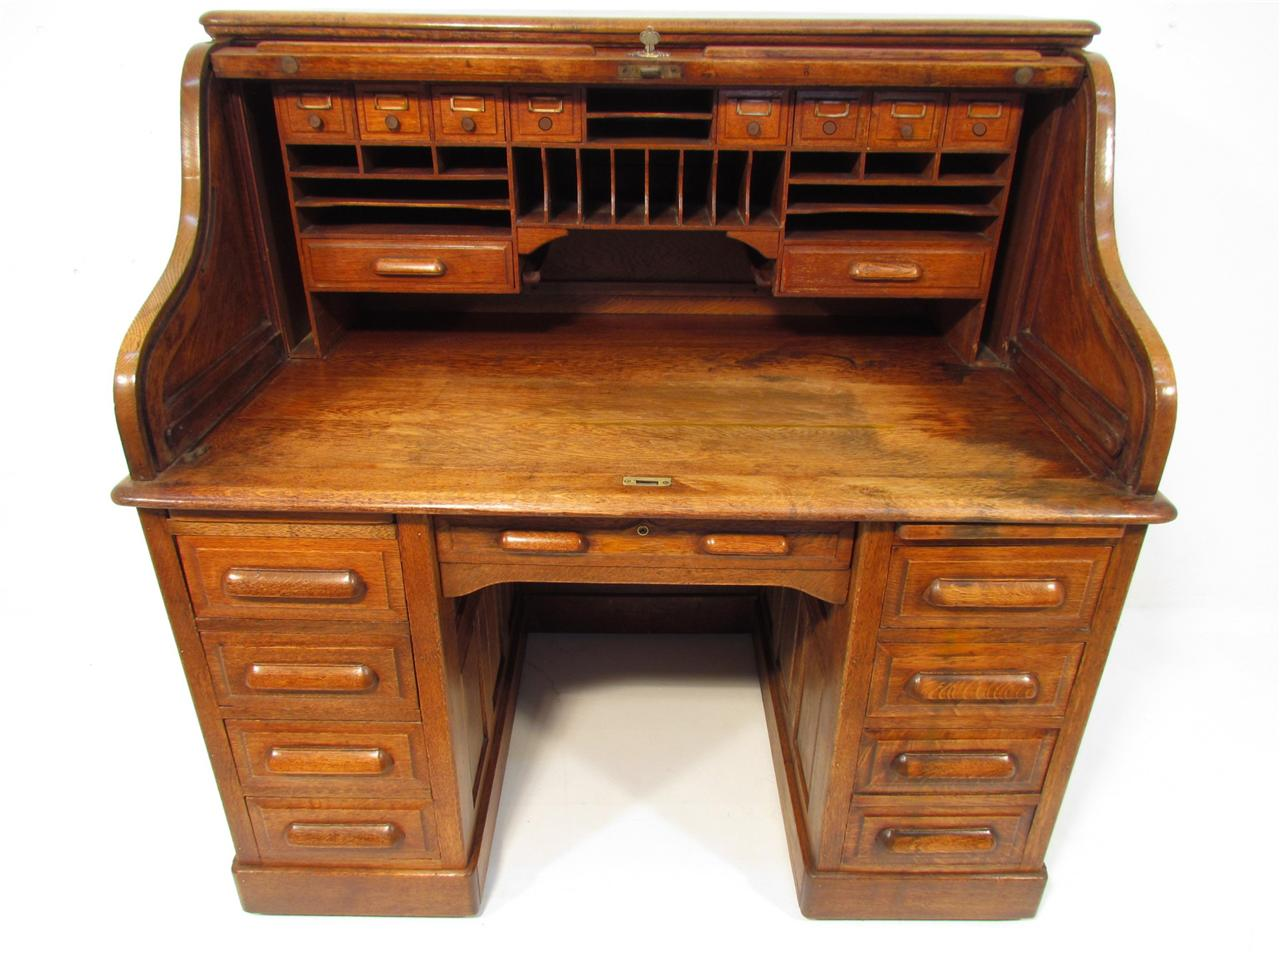 Marvelous photograph of Antique Golden Oak Roll Top Desk C 1910 eBay with #BB7410 color and 1280x960 pixels